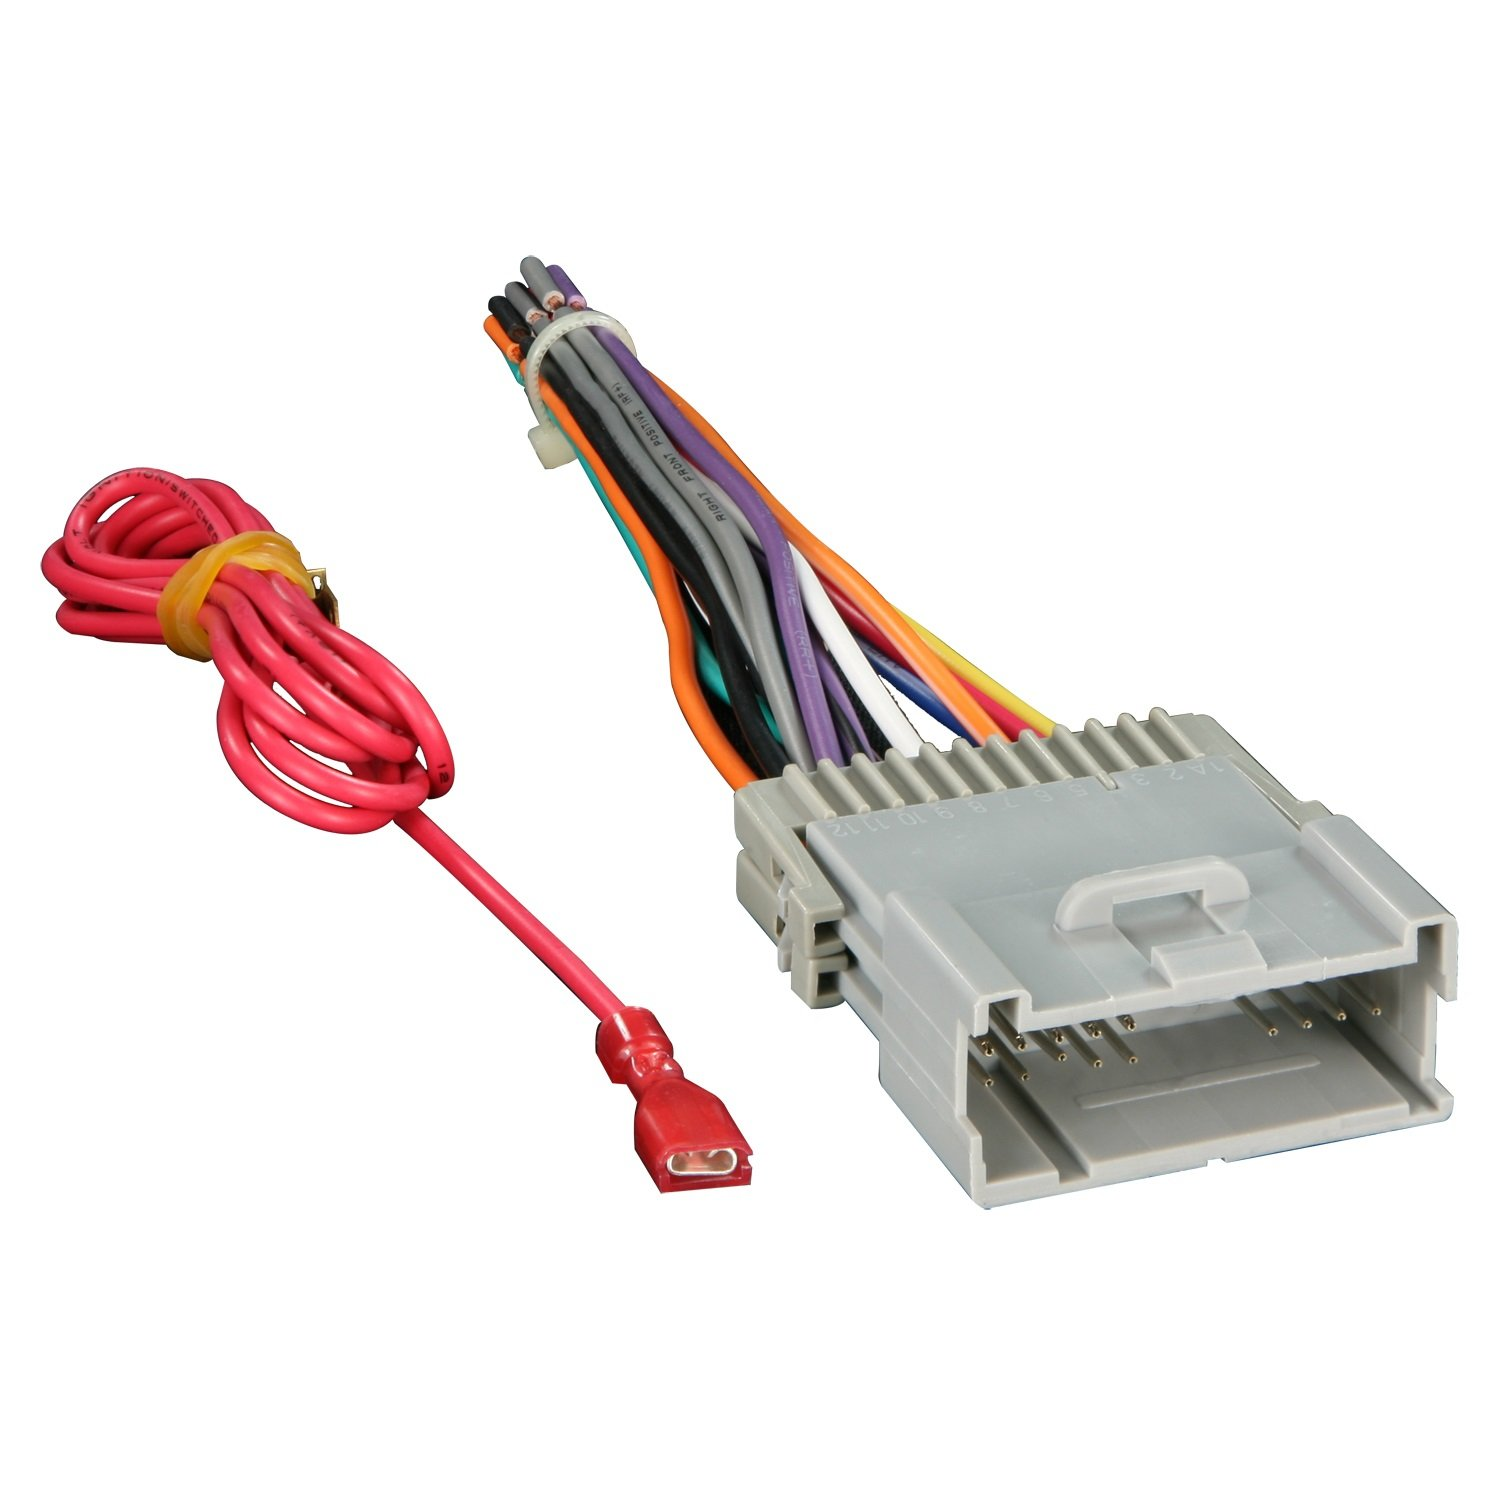 61eewxp9orL._SL1500_ amazon com metra 70 2003 radio wiring harness for gm 98 08 how to connect a wire harness for car stereo at fashall.co